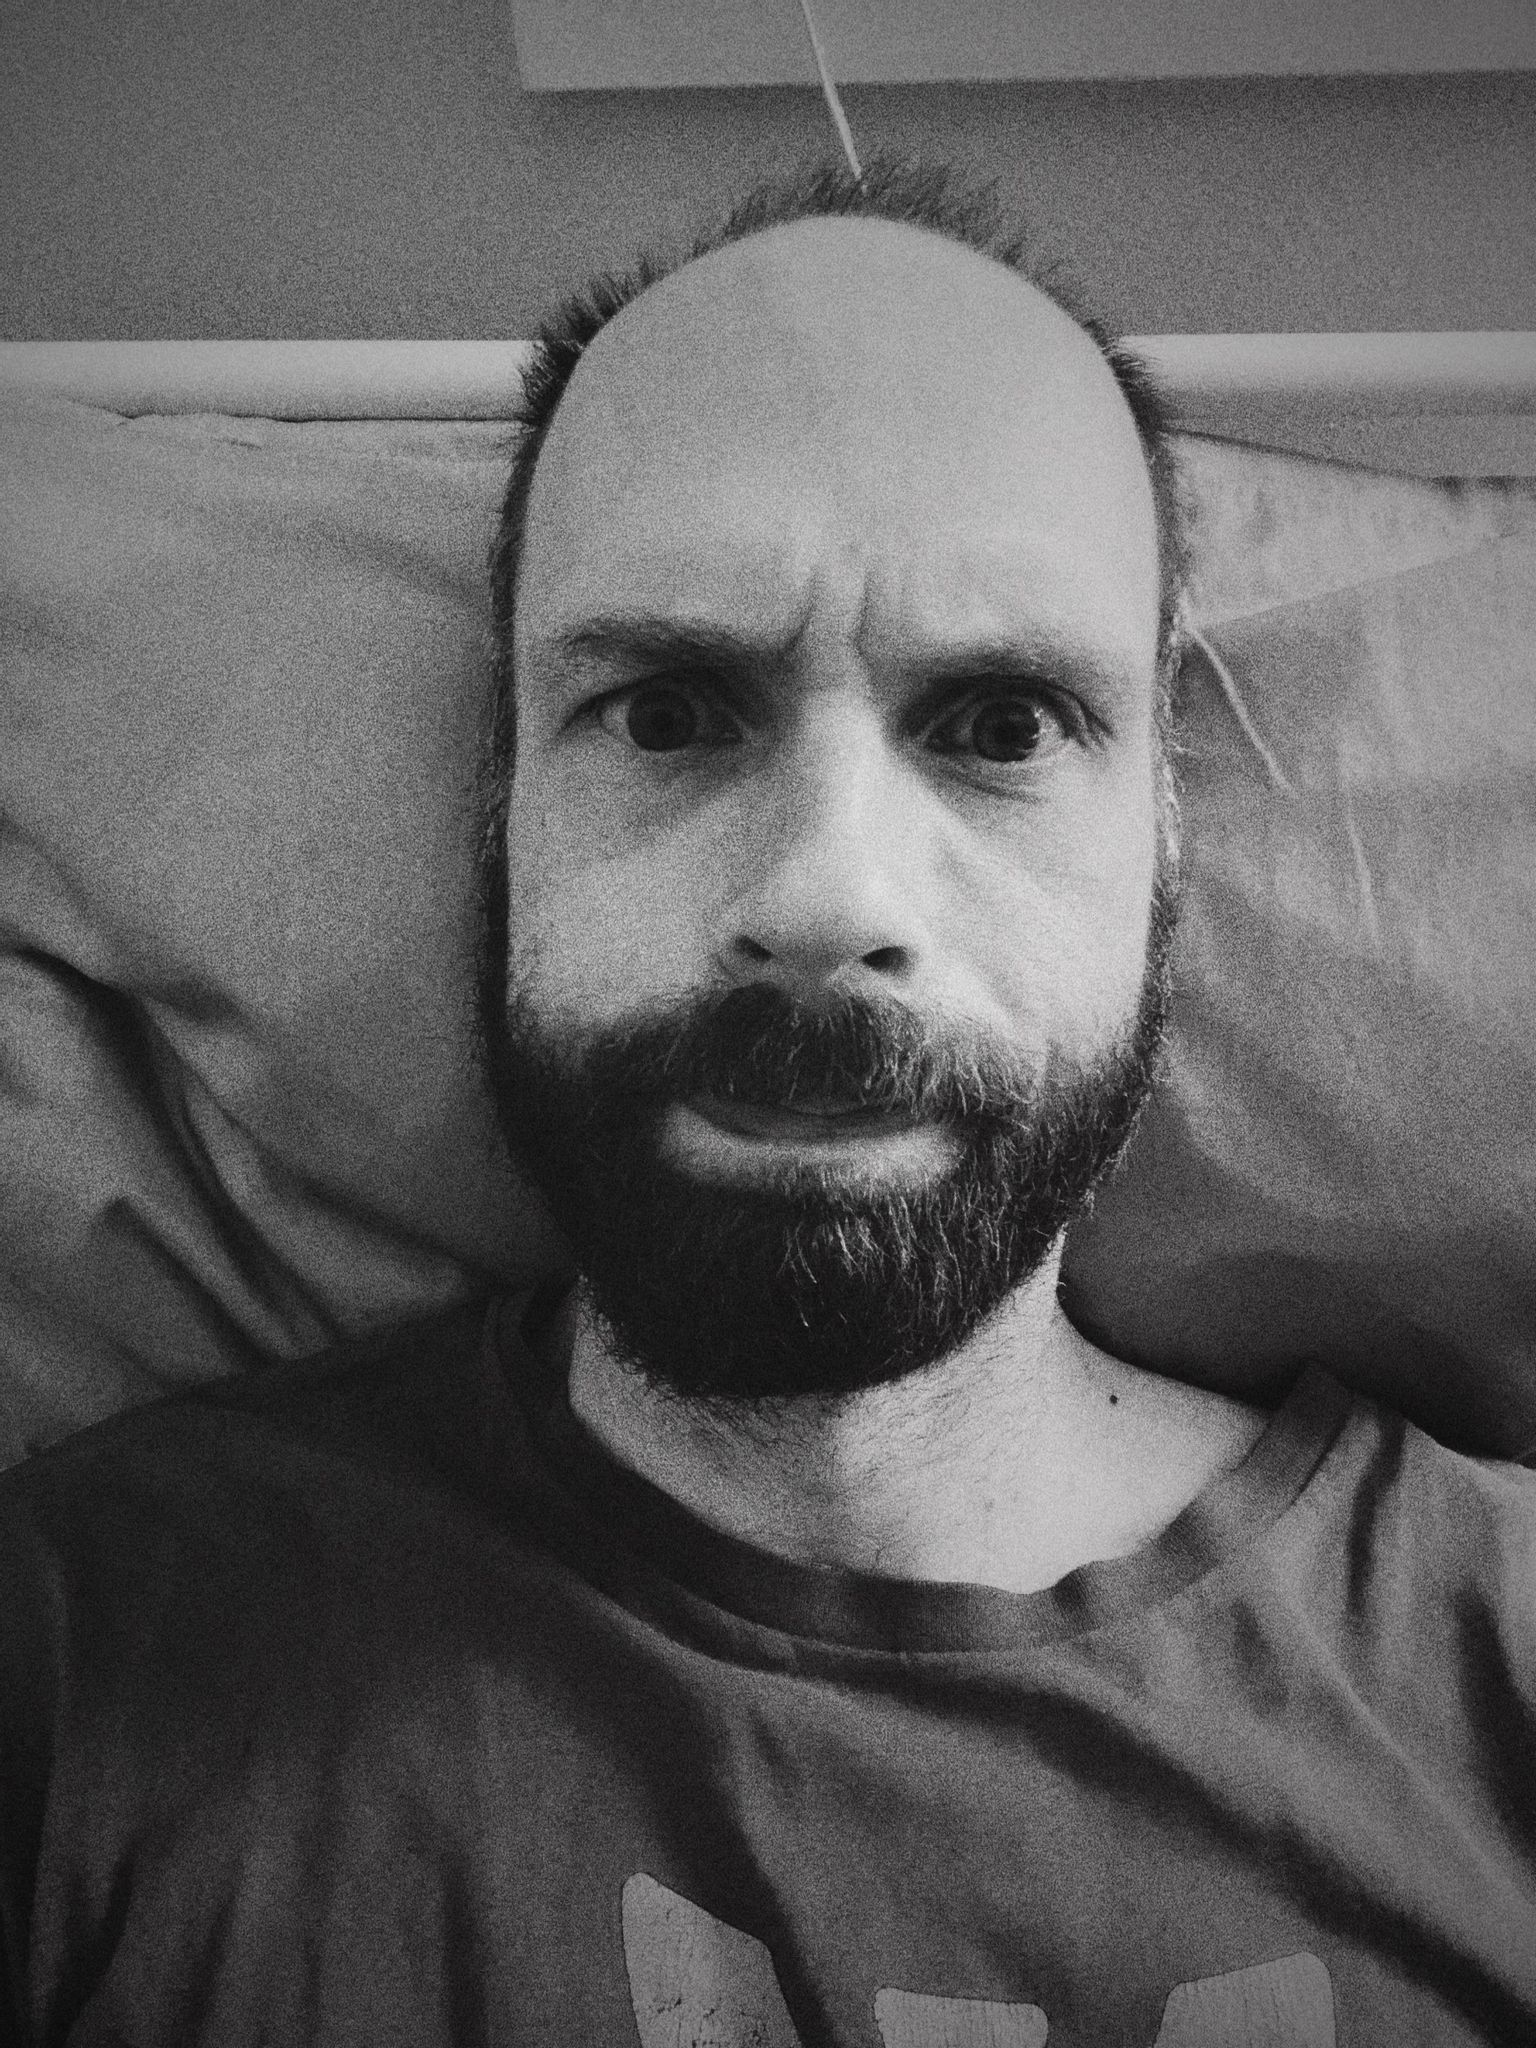 A black and white photo of me, a white man with a getting-increasingly-bushier beard, lying on a pillow with my eyebrows furrowed and my lips pursed.